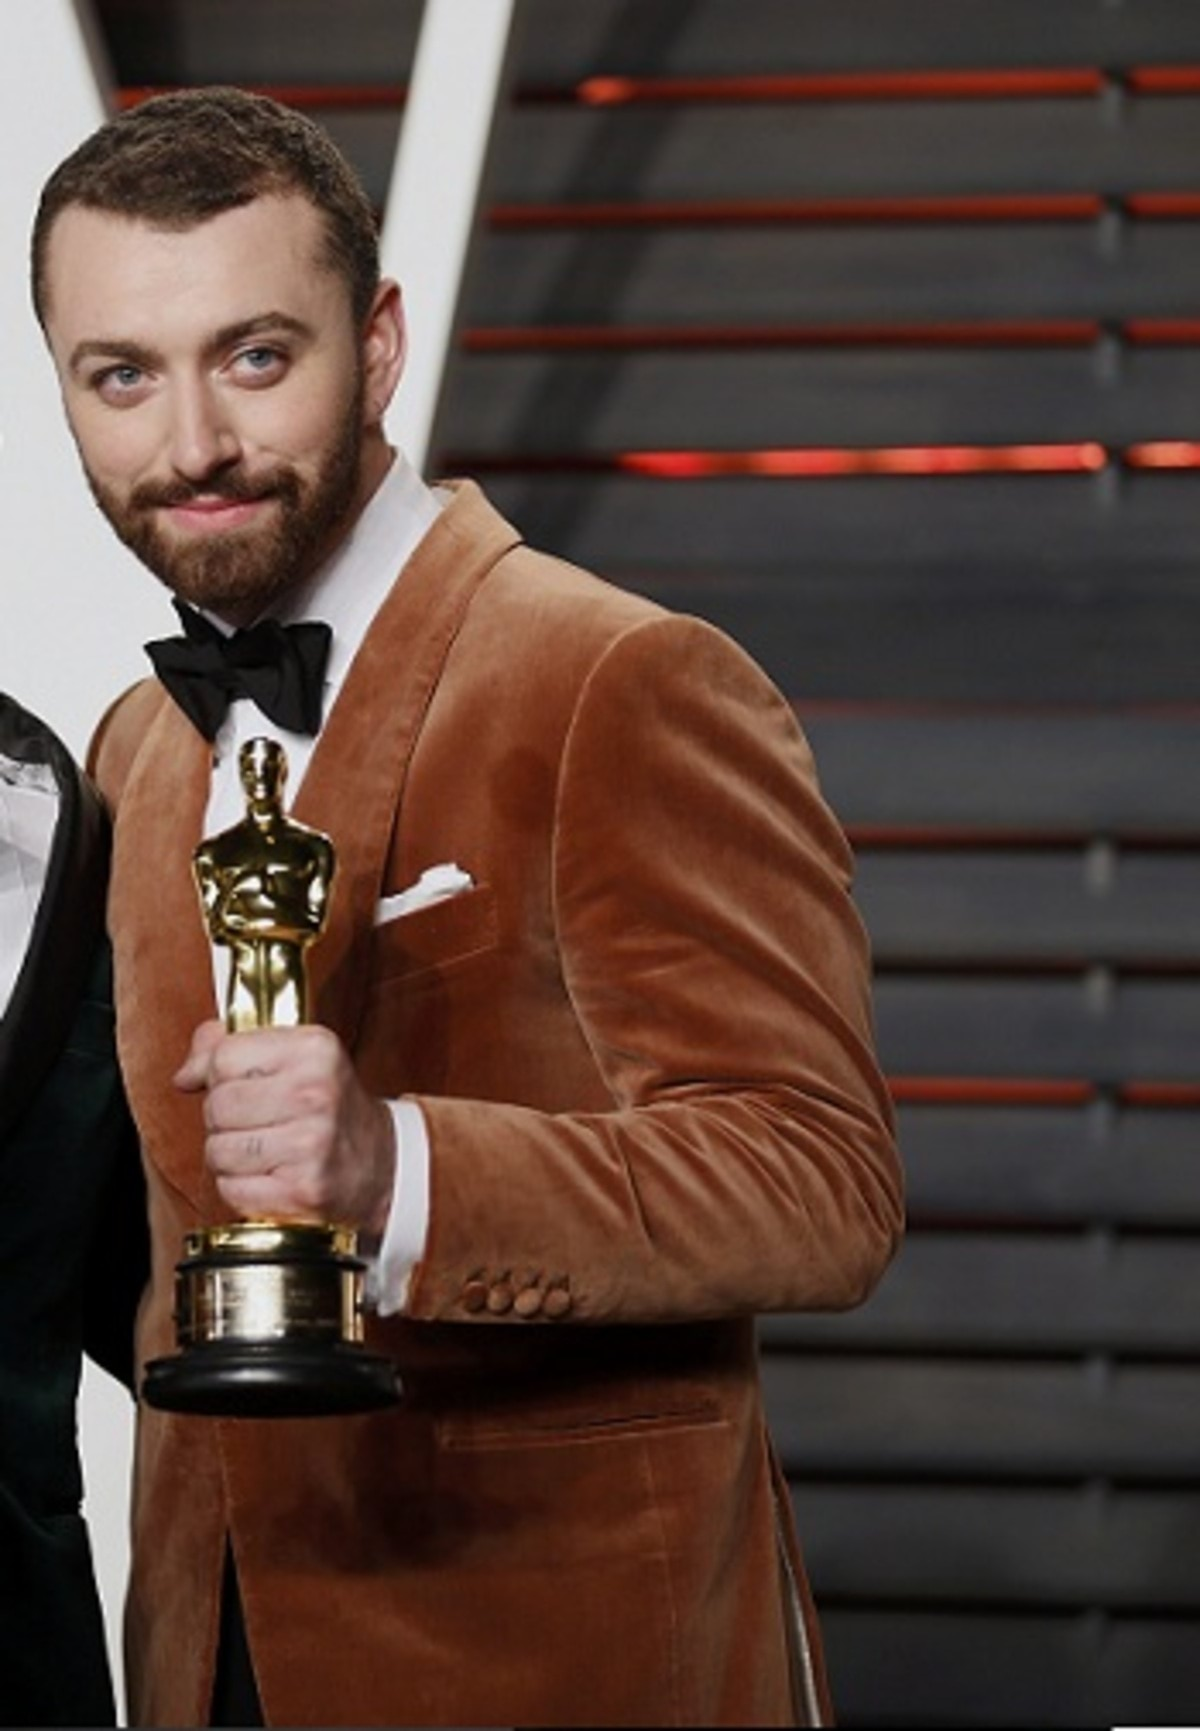 """British musicians Jimmy Napes and Sam Smith with their Oscars for Best Original Song for """"Writing's on the Wall"""" from the film """"Spectre"""", arrive at the Vanity Fair Oscar Party in Beverly Hills, California"""